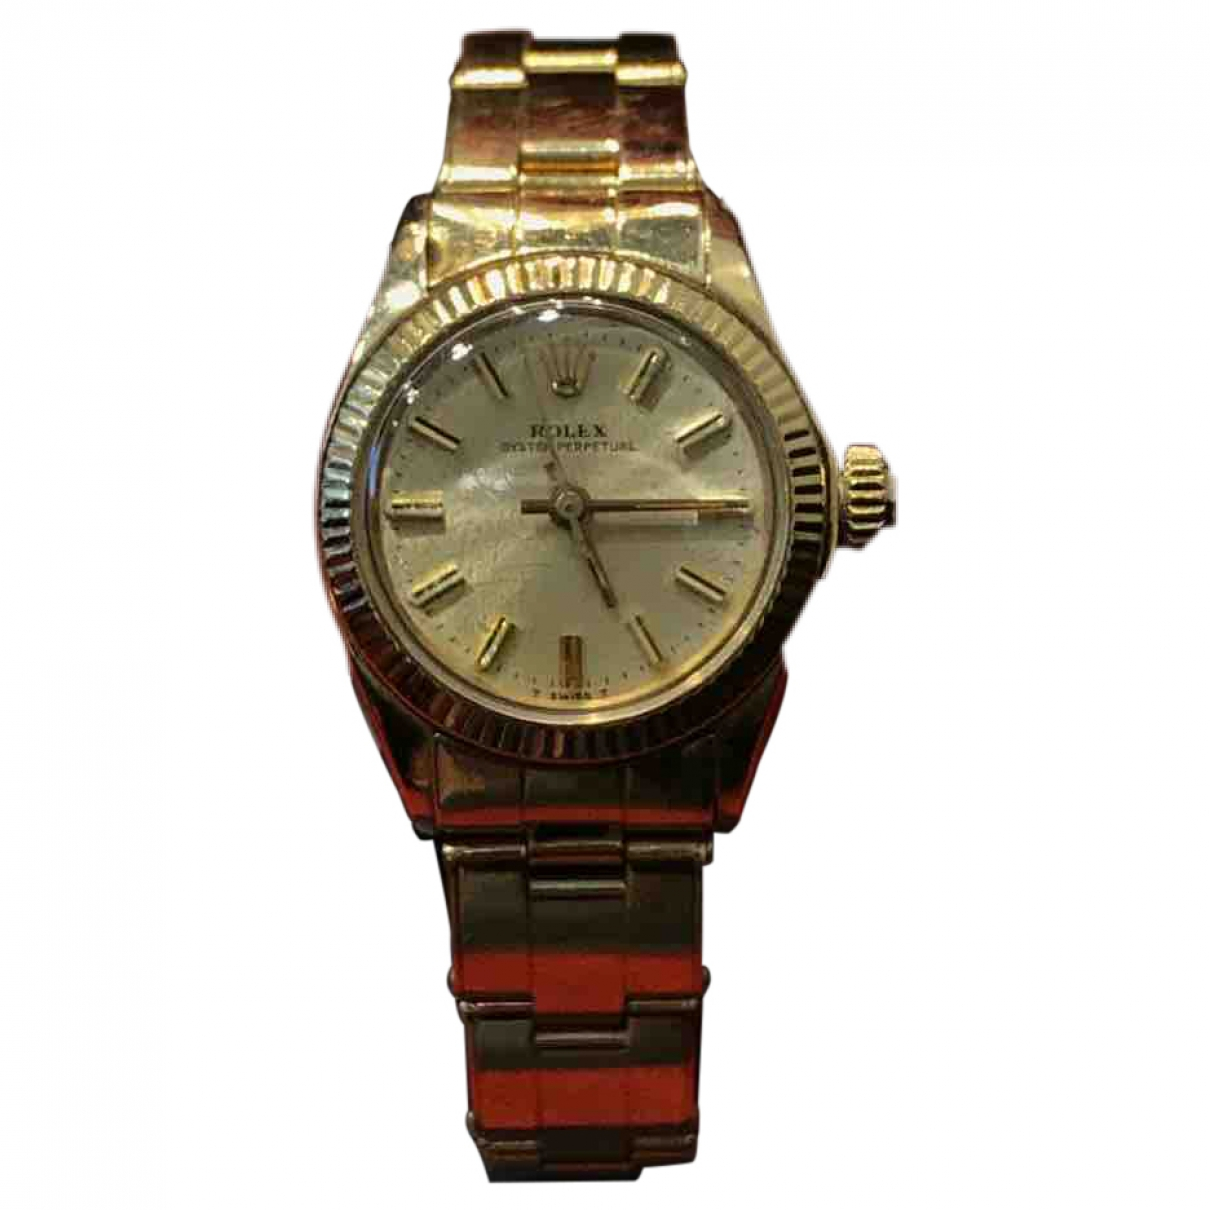 Rolex Lady Oyster Perpetual 26mm Uhr in  Gelb Gelbgold